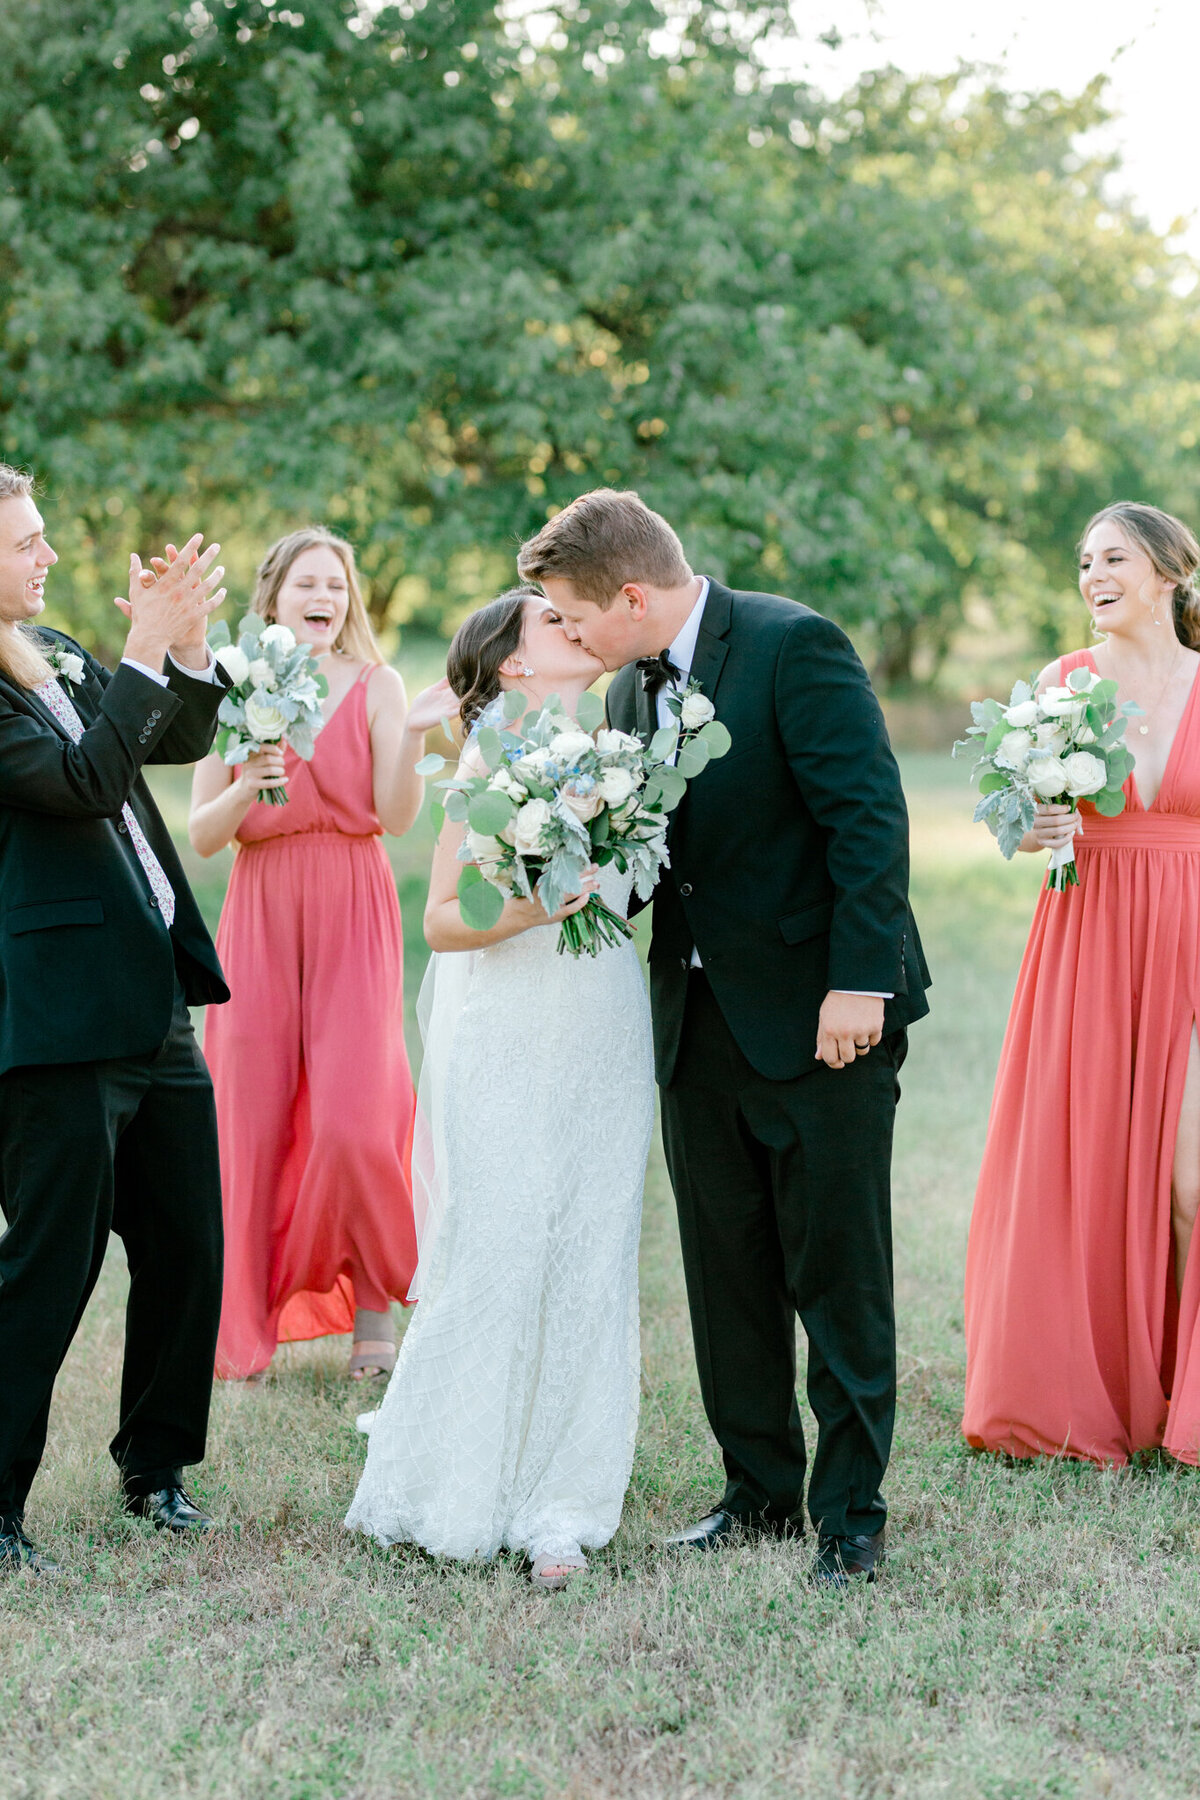 Anna & Billy's Wedding at The Nest at Ruth Farms | Dallas Wedding Photographer | Sami Kathryn Photography-161